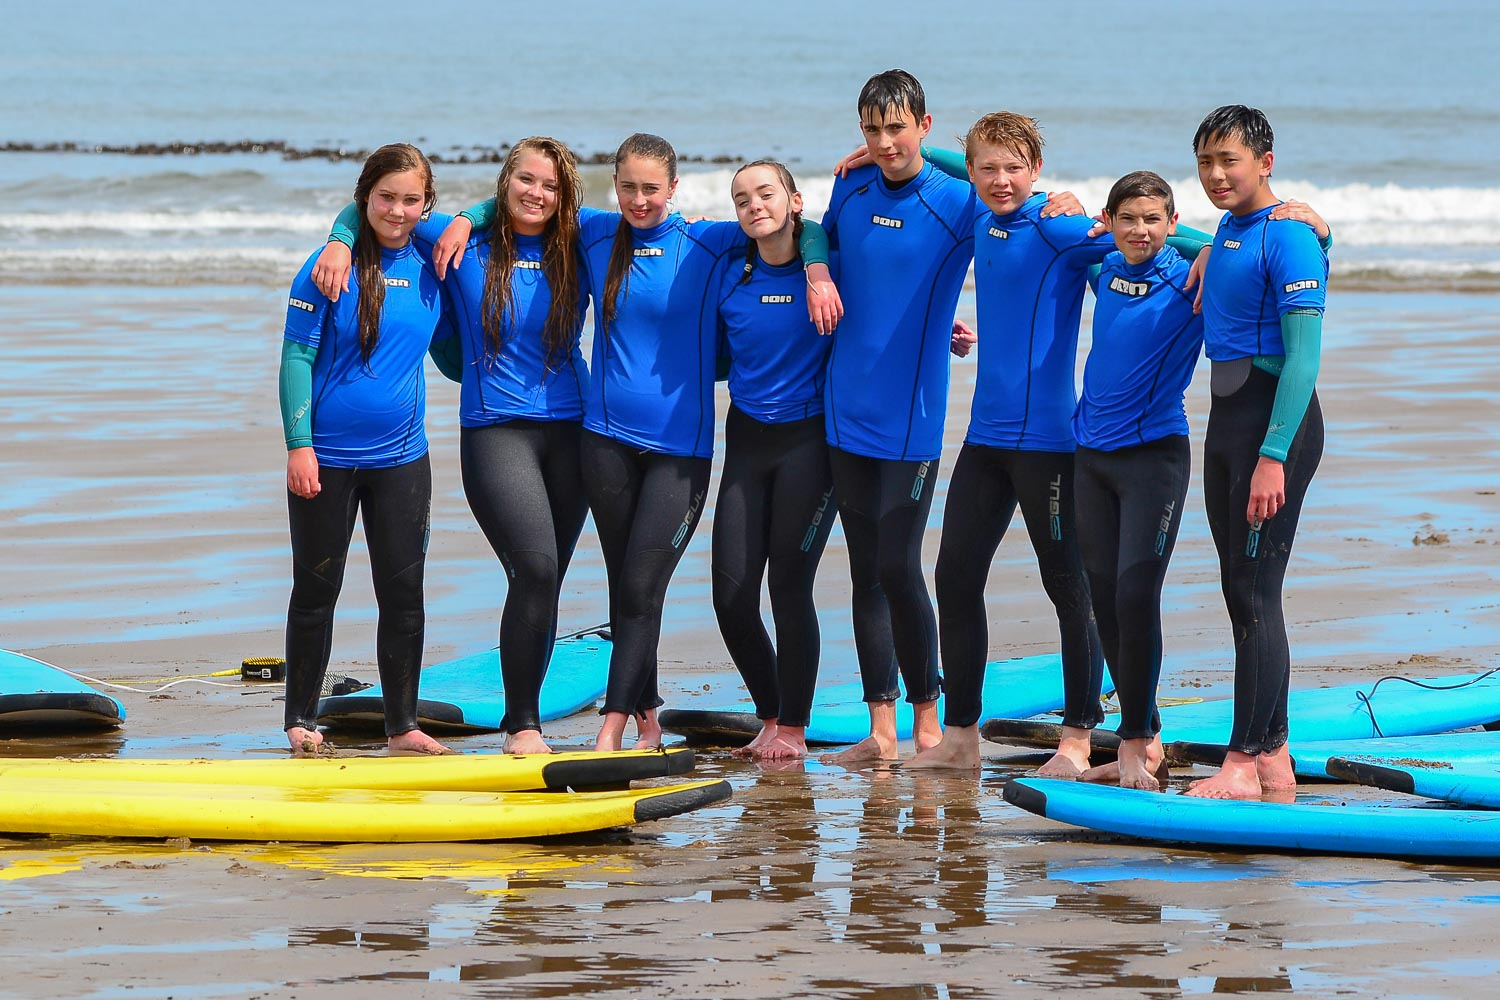 Teenagers enjoying a Group Surf Lesson